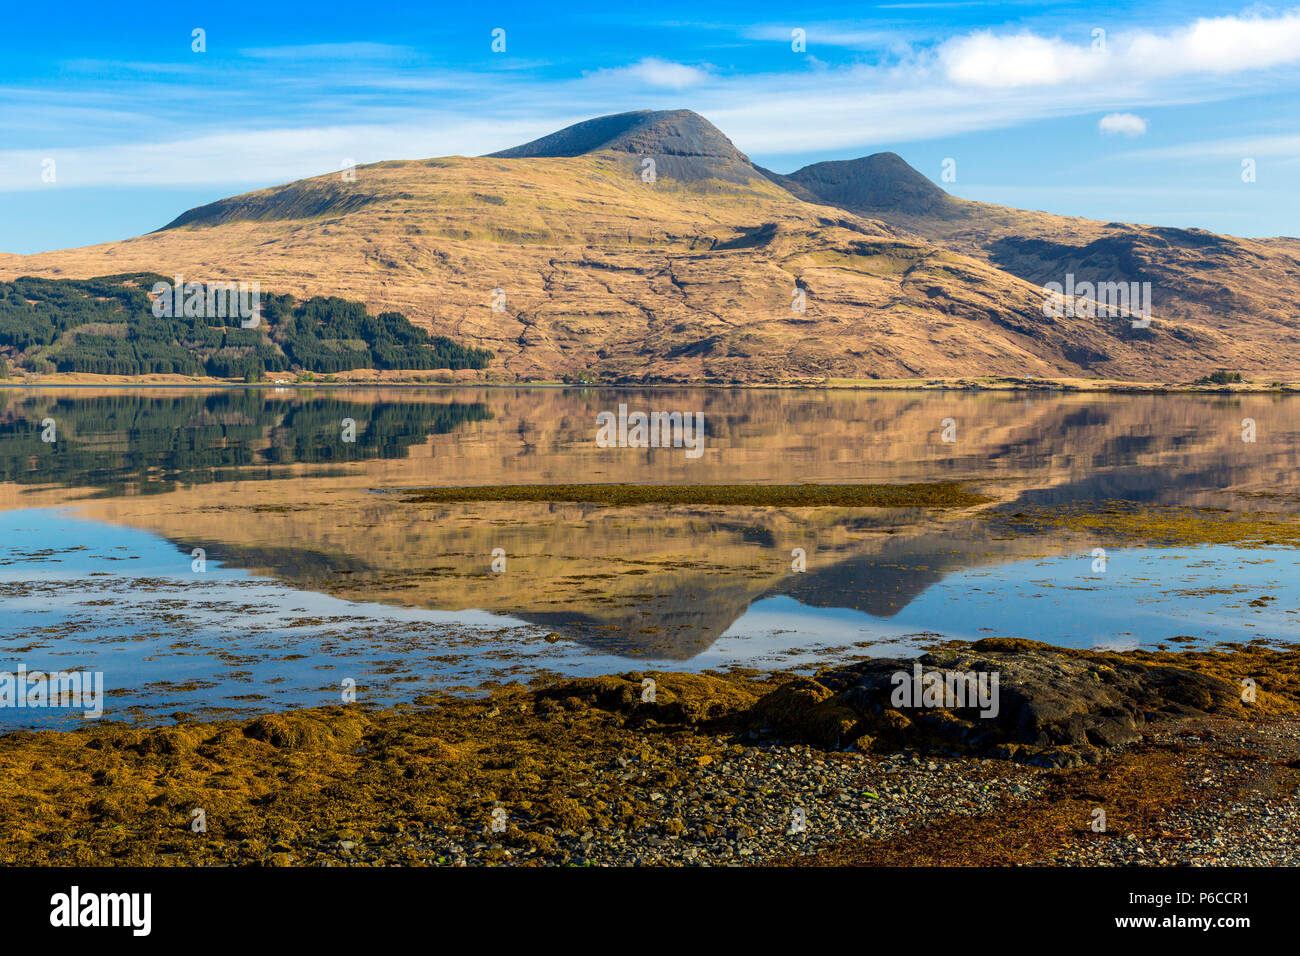 Early morning reflections of Ben More in the still waters of Loch Scridain on the Isle of Mull, Argyll and Bute, Scotland, UK - Stock Image